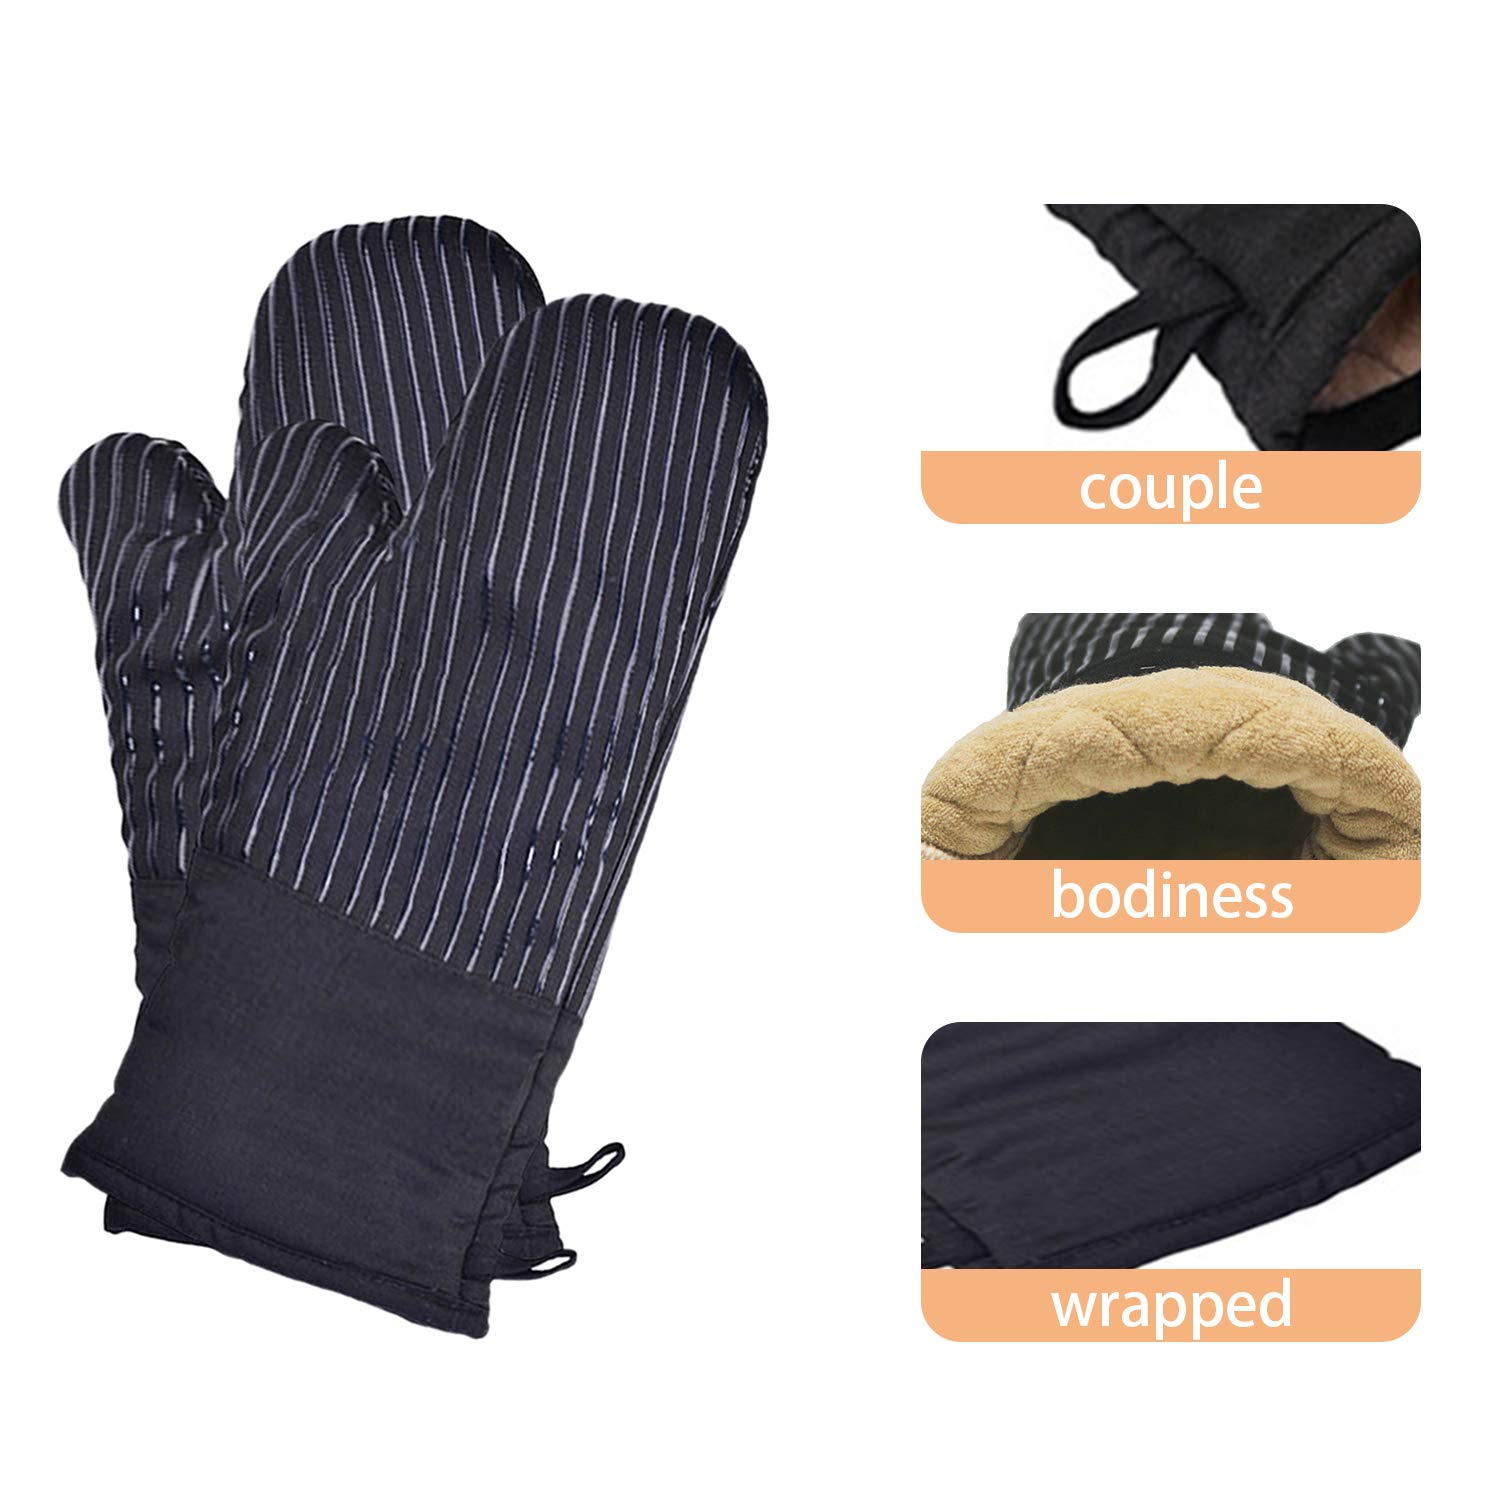 """Cotton Oven Mitts with Silicone, Extra Long Professional Oven Mitts, 13"""" x 7"""" Non-Slip Kitchen Oven Gloves, Water and Heat Resistant Oven Mitt Gloves with Hanging Loop, 1 Pair (Black)"""